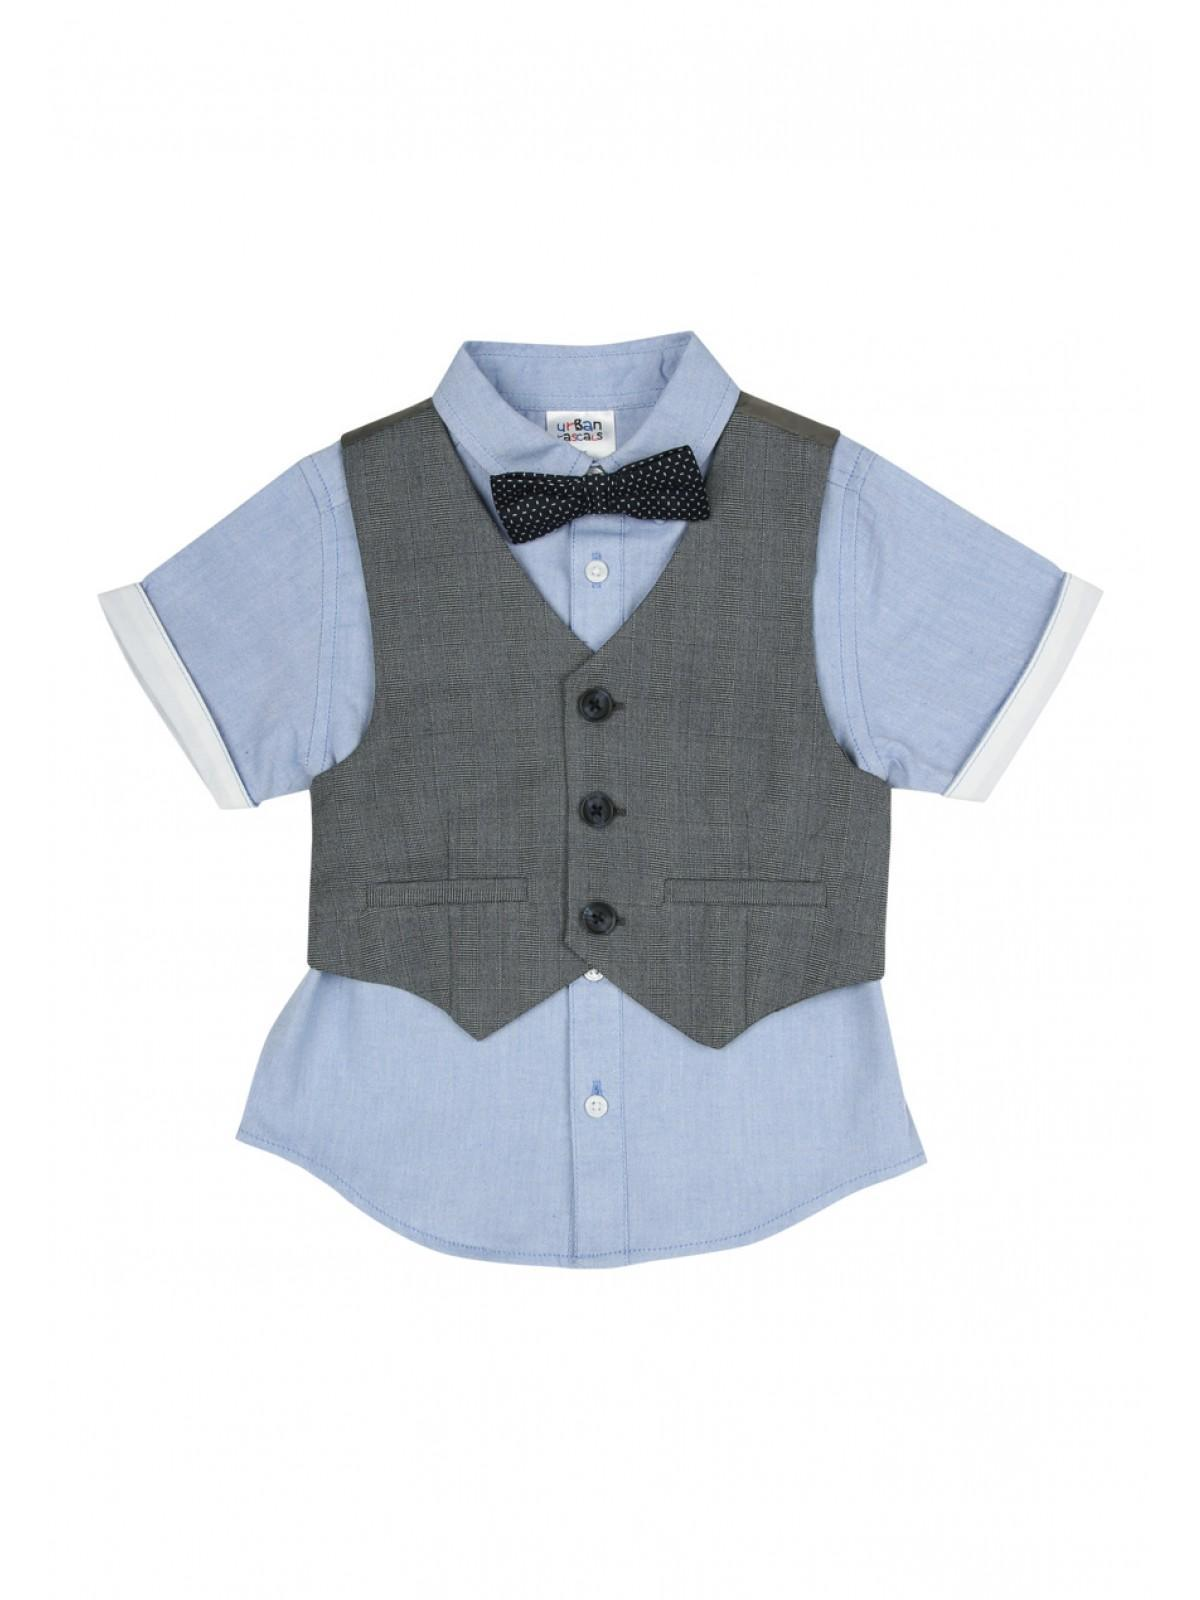 9ffd6a59aad5 Home; Younger Boys Waistcoat And Shirt Set. Back. PreviousNext